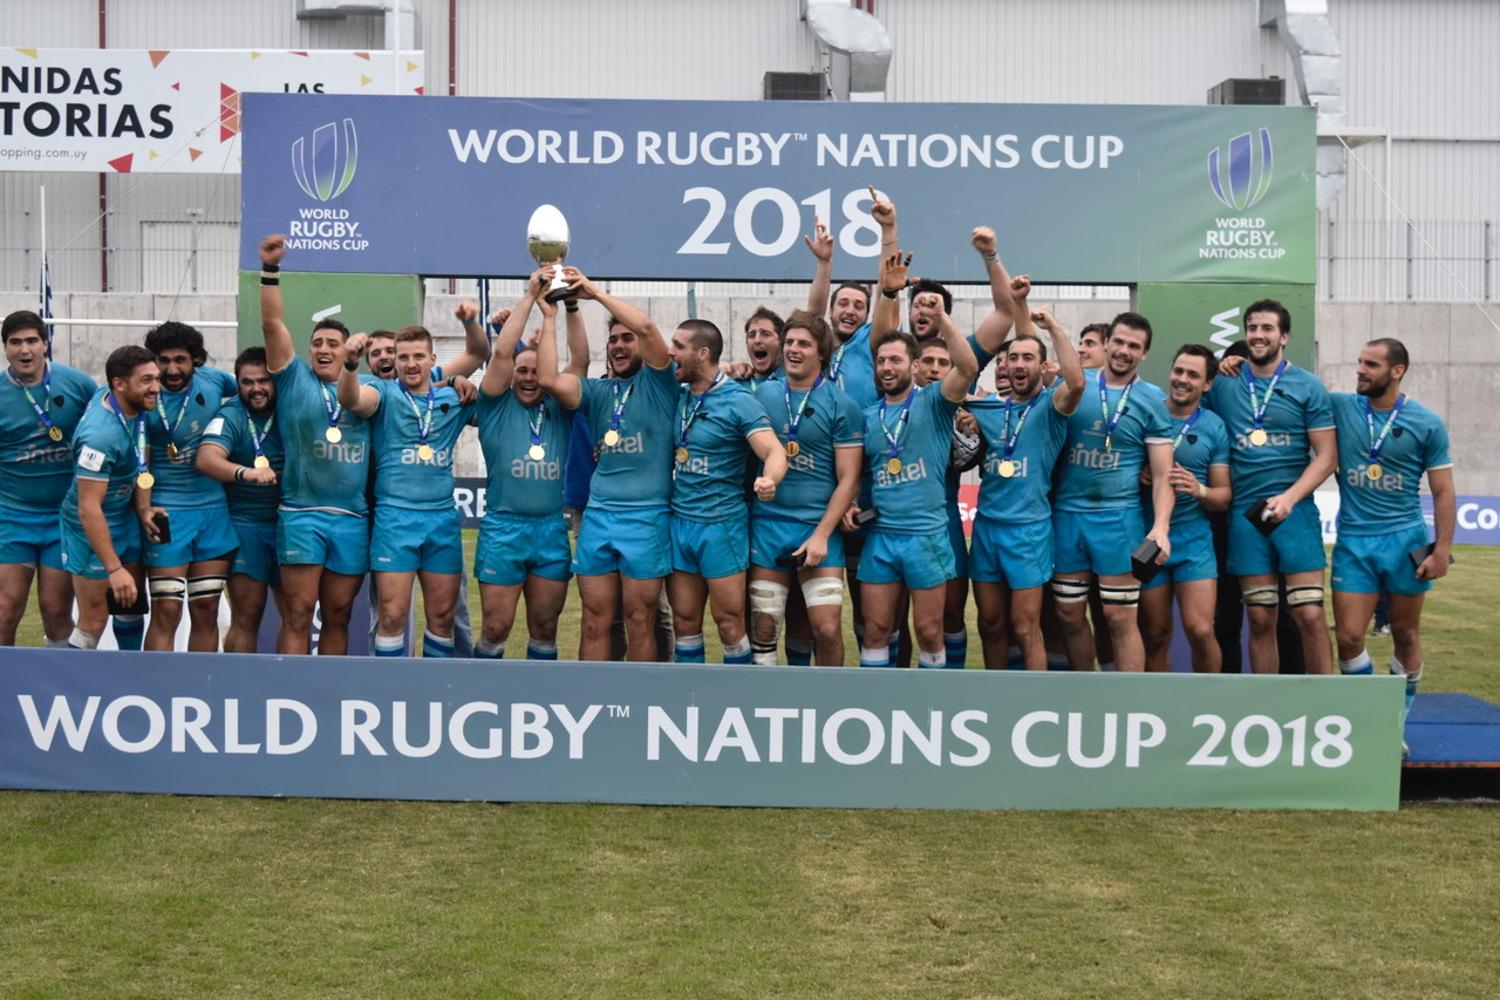 World Rugby Nations Cup 2018: Trophy lift